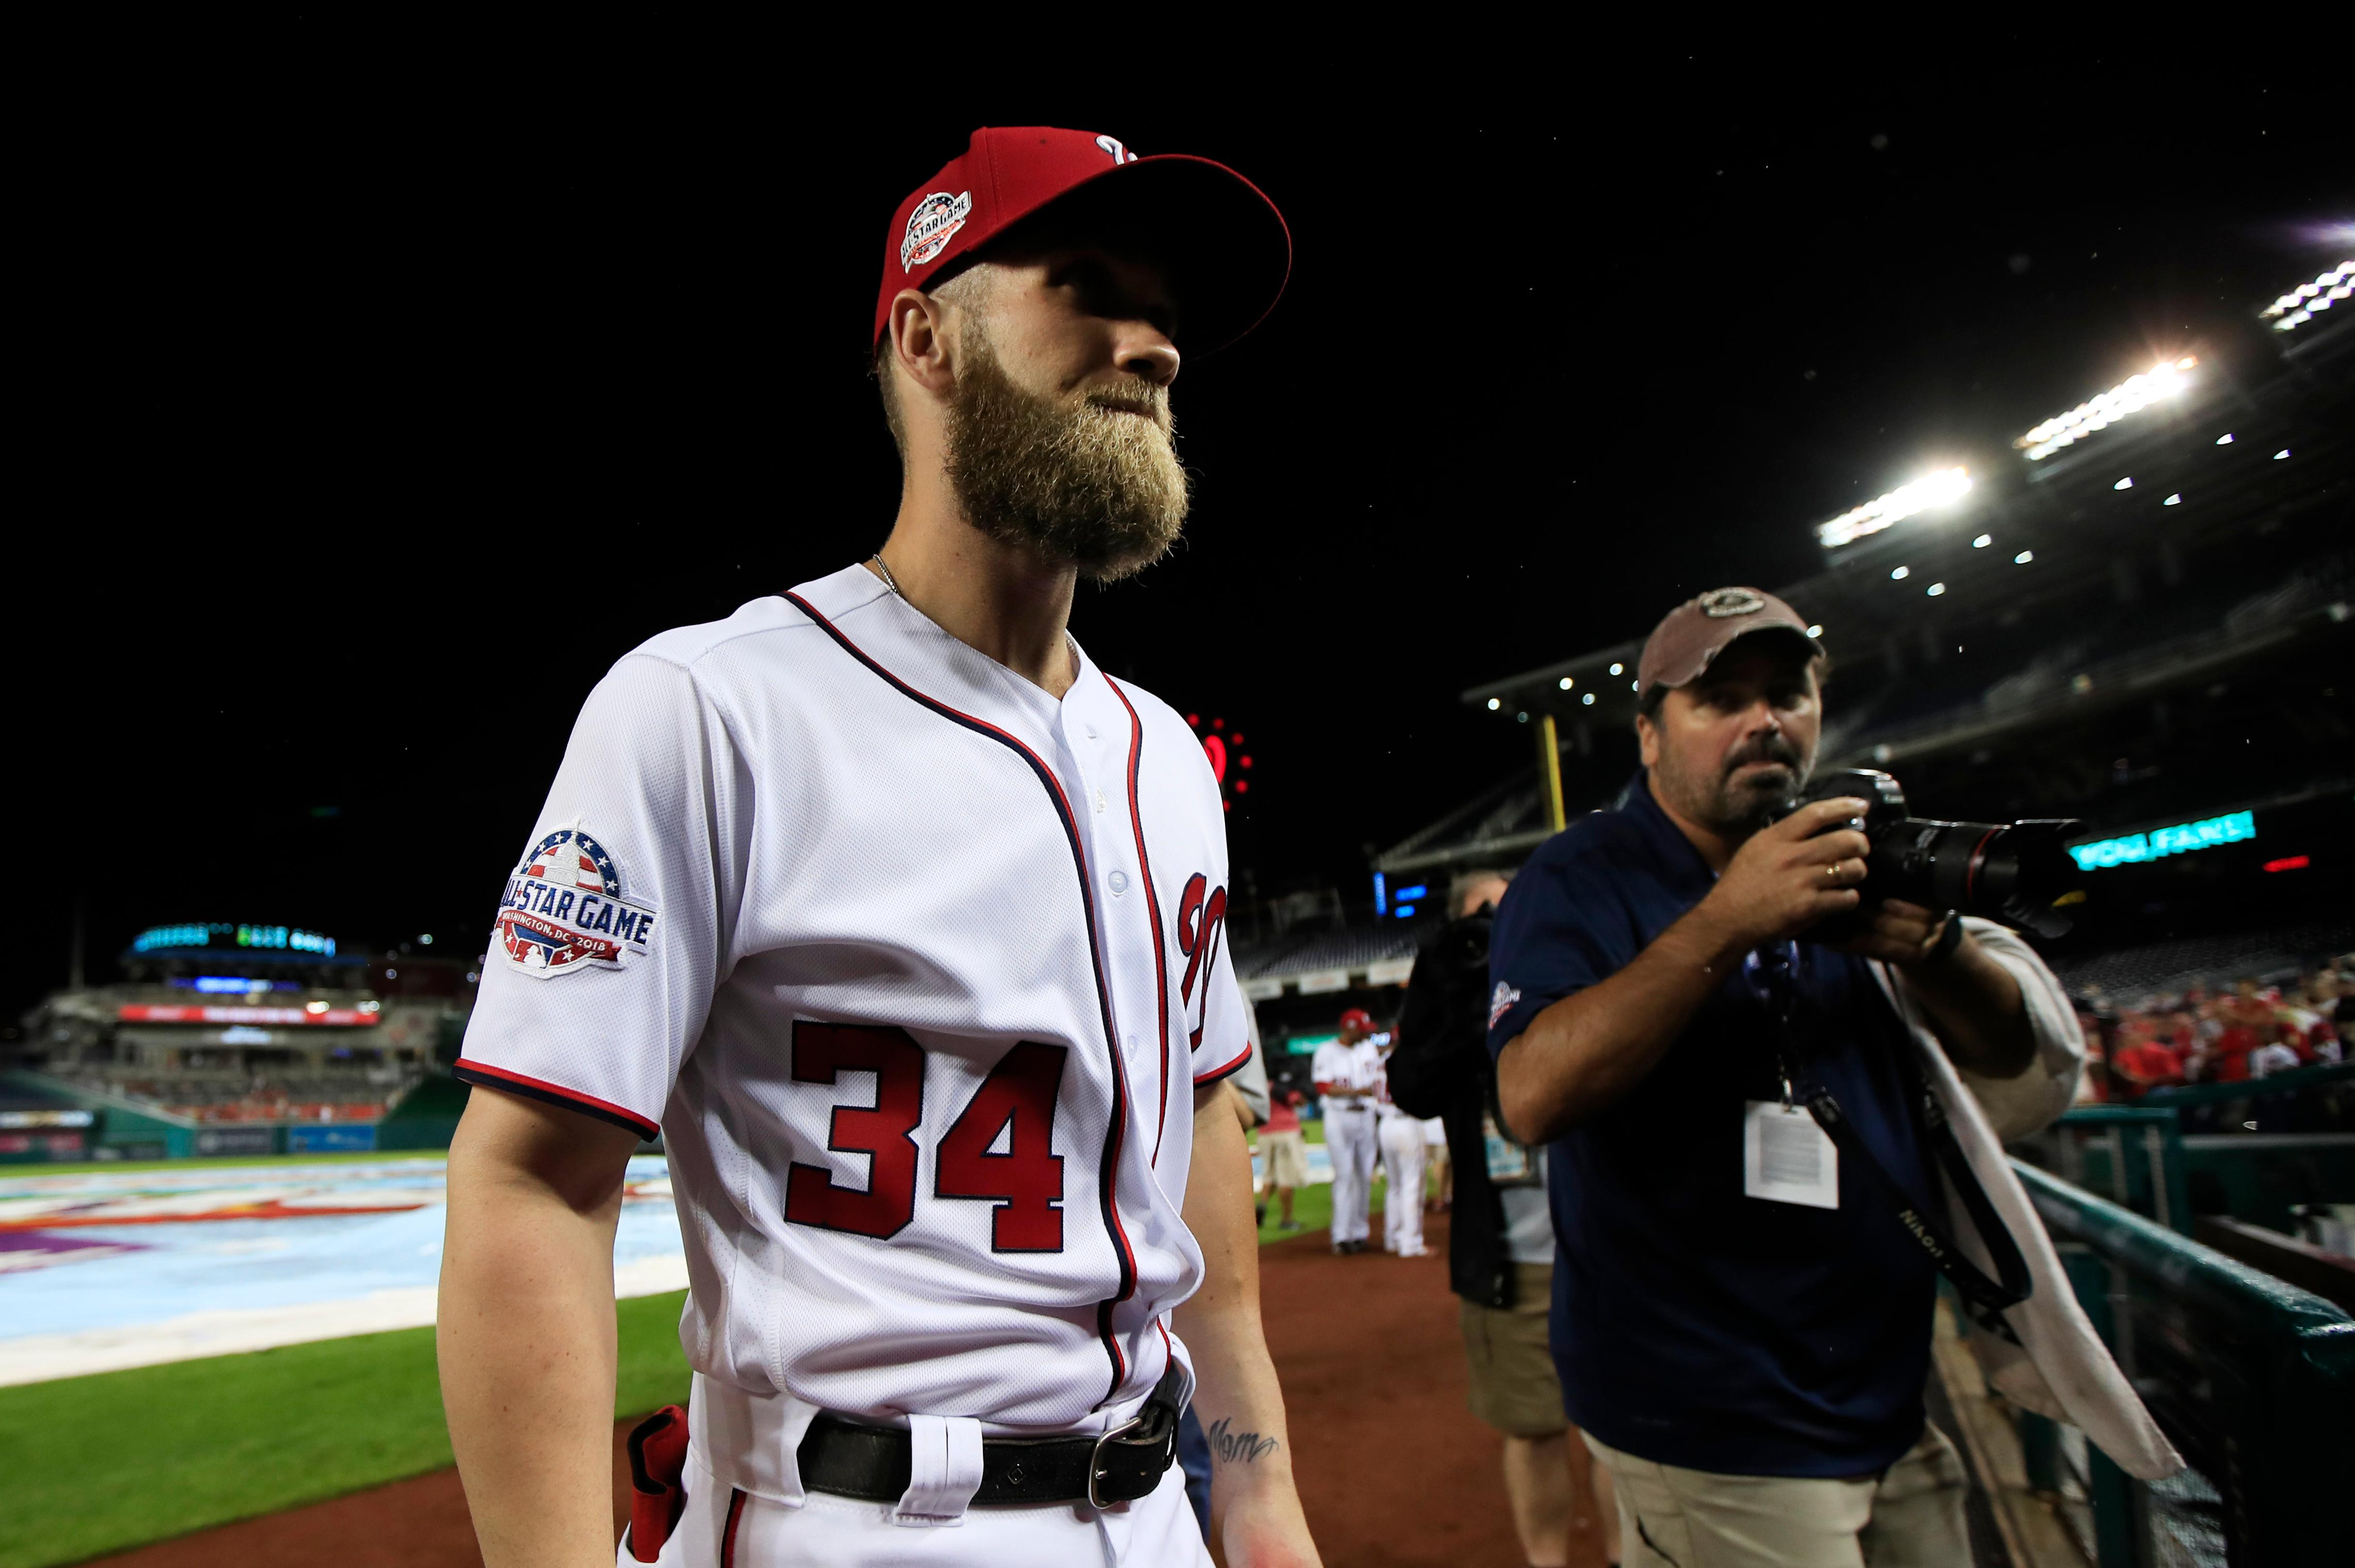 Washington Nationals Bryce Harper (34) leaves the field after the Nationals ended their last home game of the season with a 9-3 rain delayed win against the Miami Marlins in Washington, Wednesday, Sept. 26, 2018. (AP Photo/Manuel Balce Ceneta)